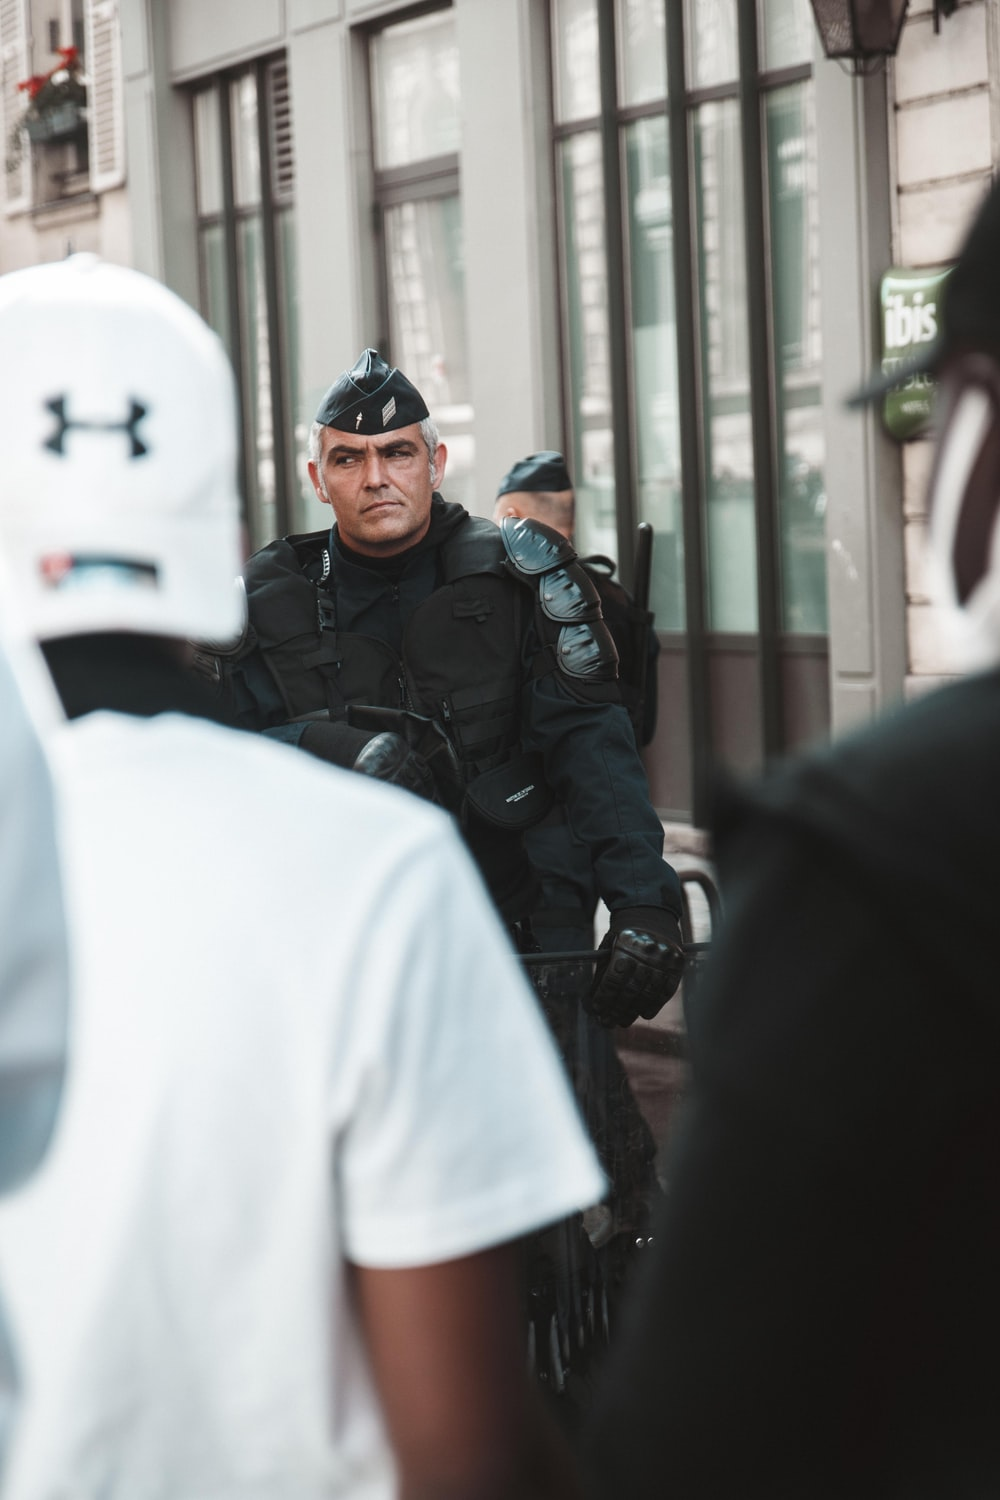 man in black police uniform standing near people during daytime